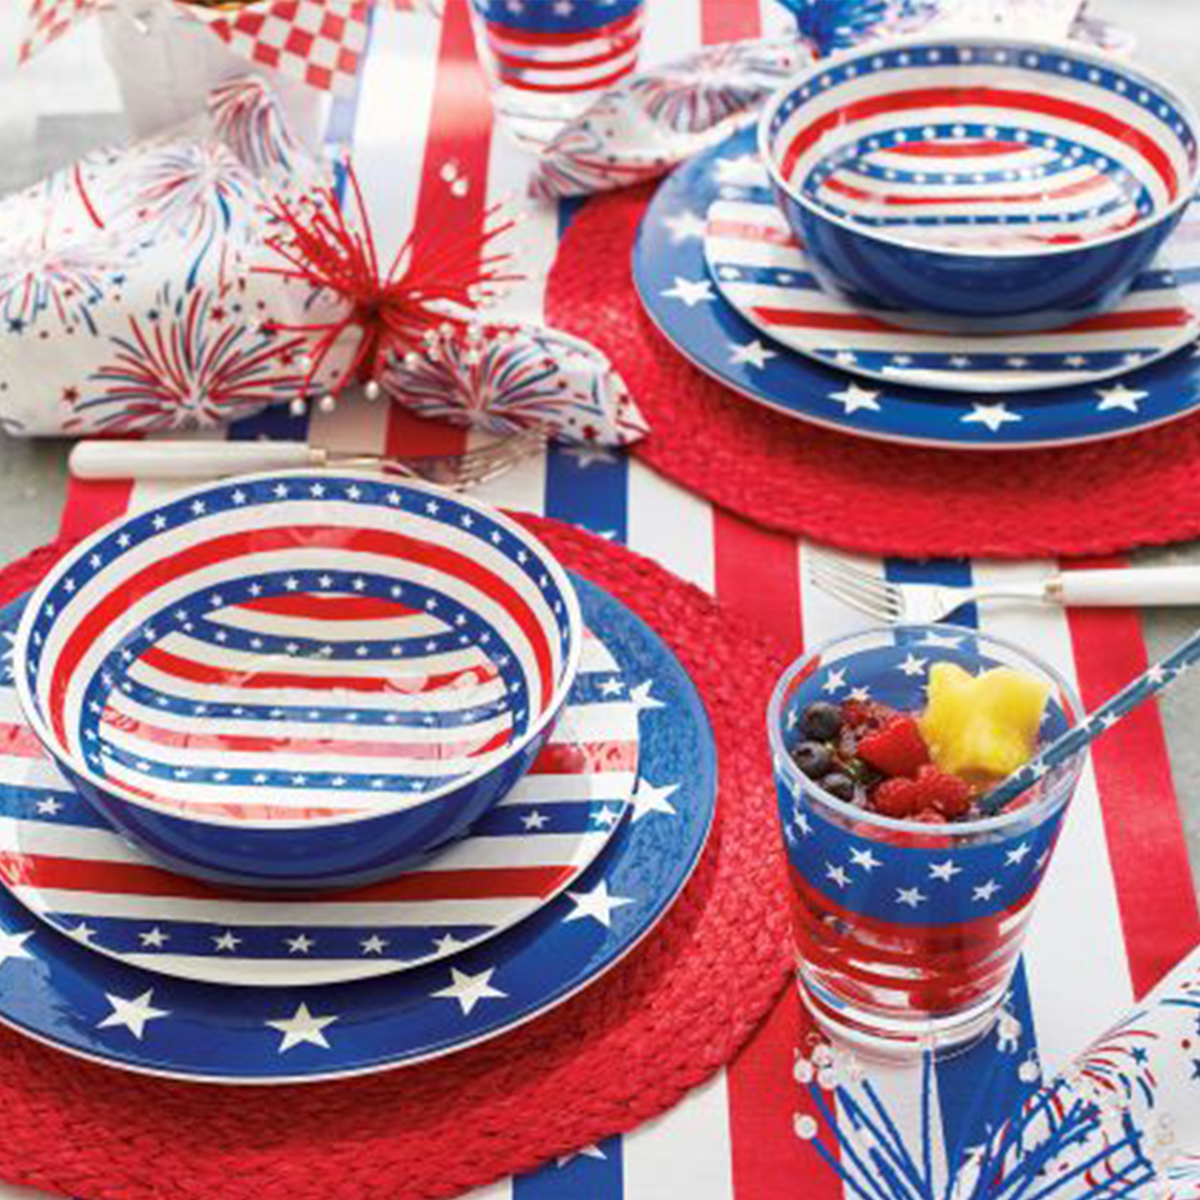 Red, white, and blue dinnerware set with striped patterns on the bowls, plates, and cups photo